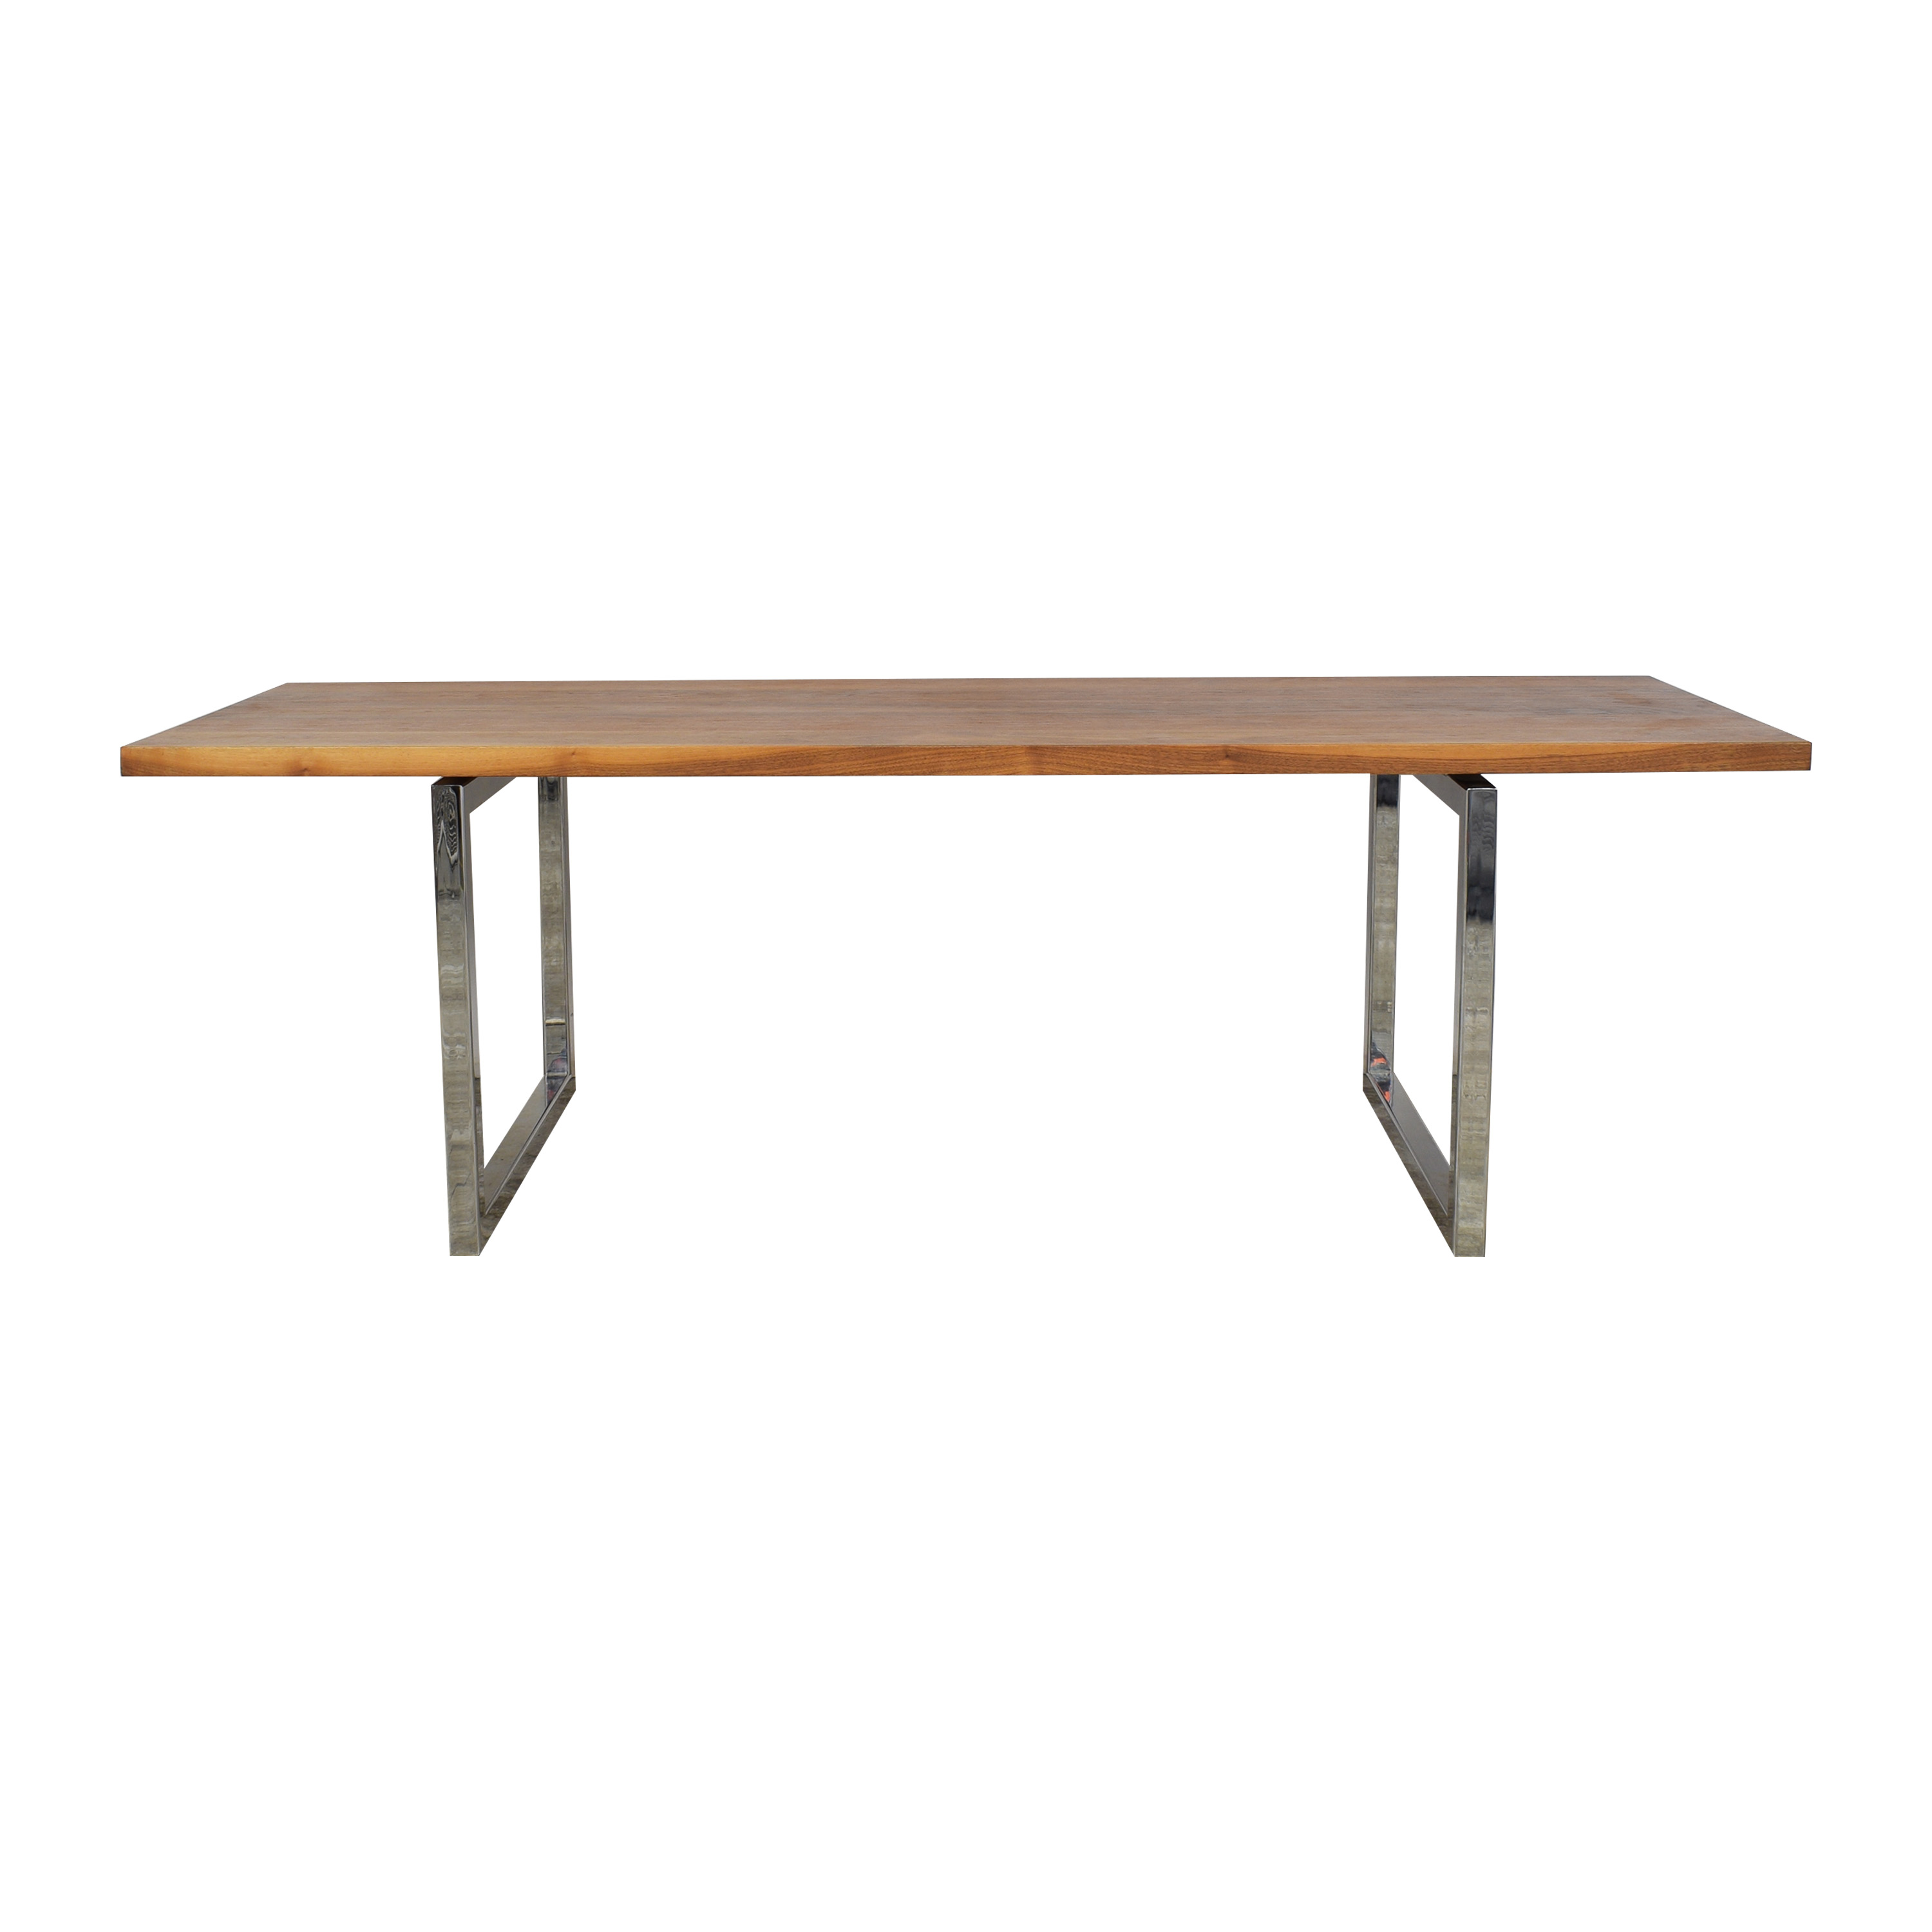 shop Artless Artless Walnut Dining Table online